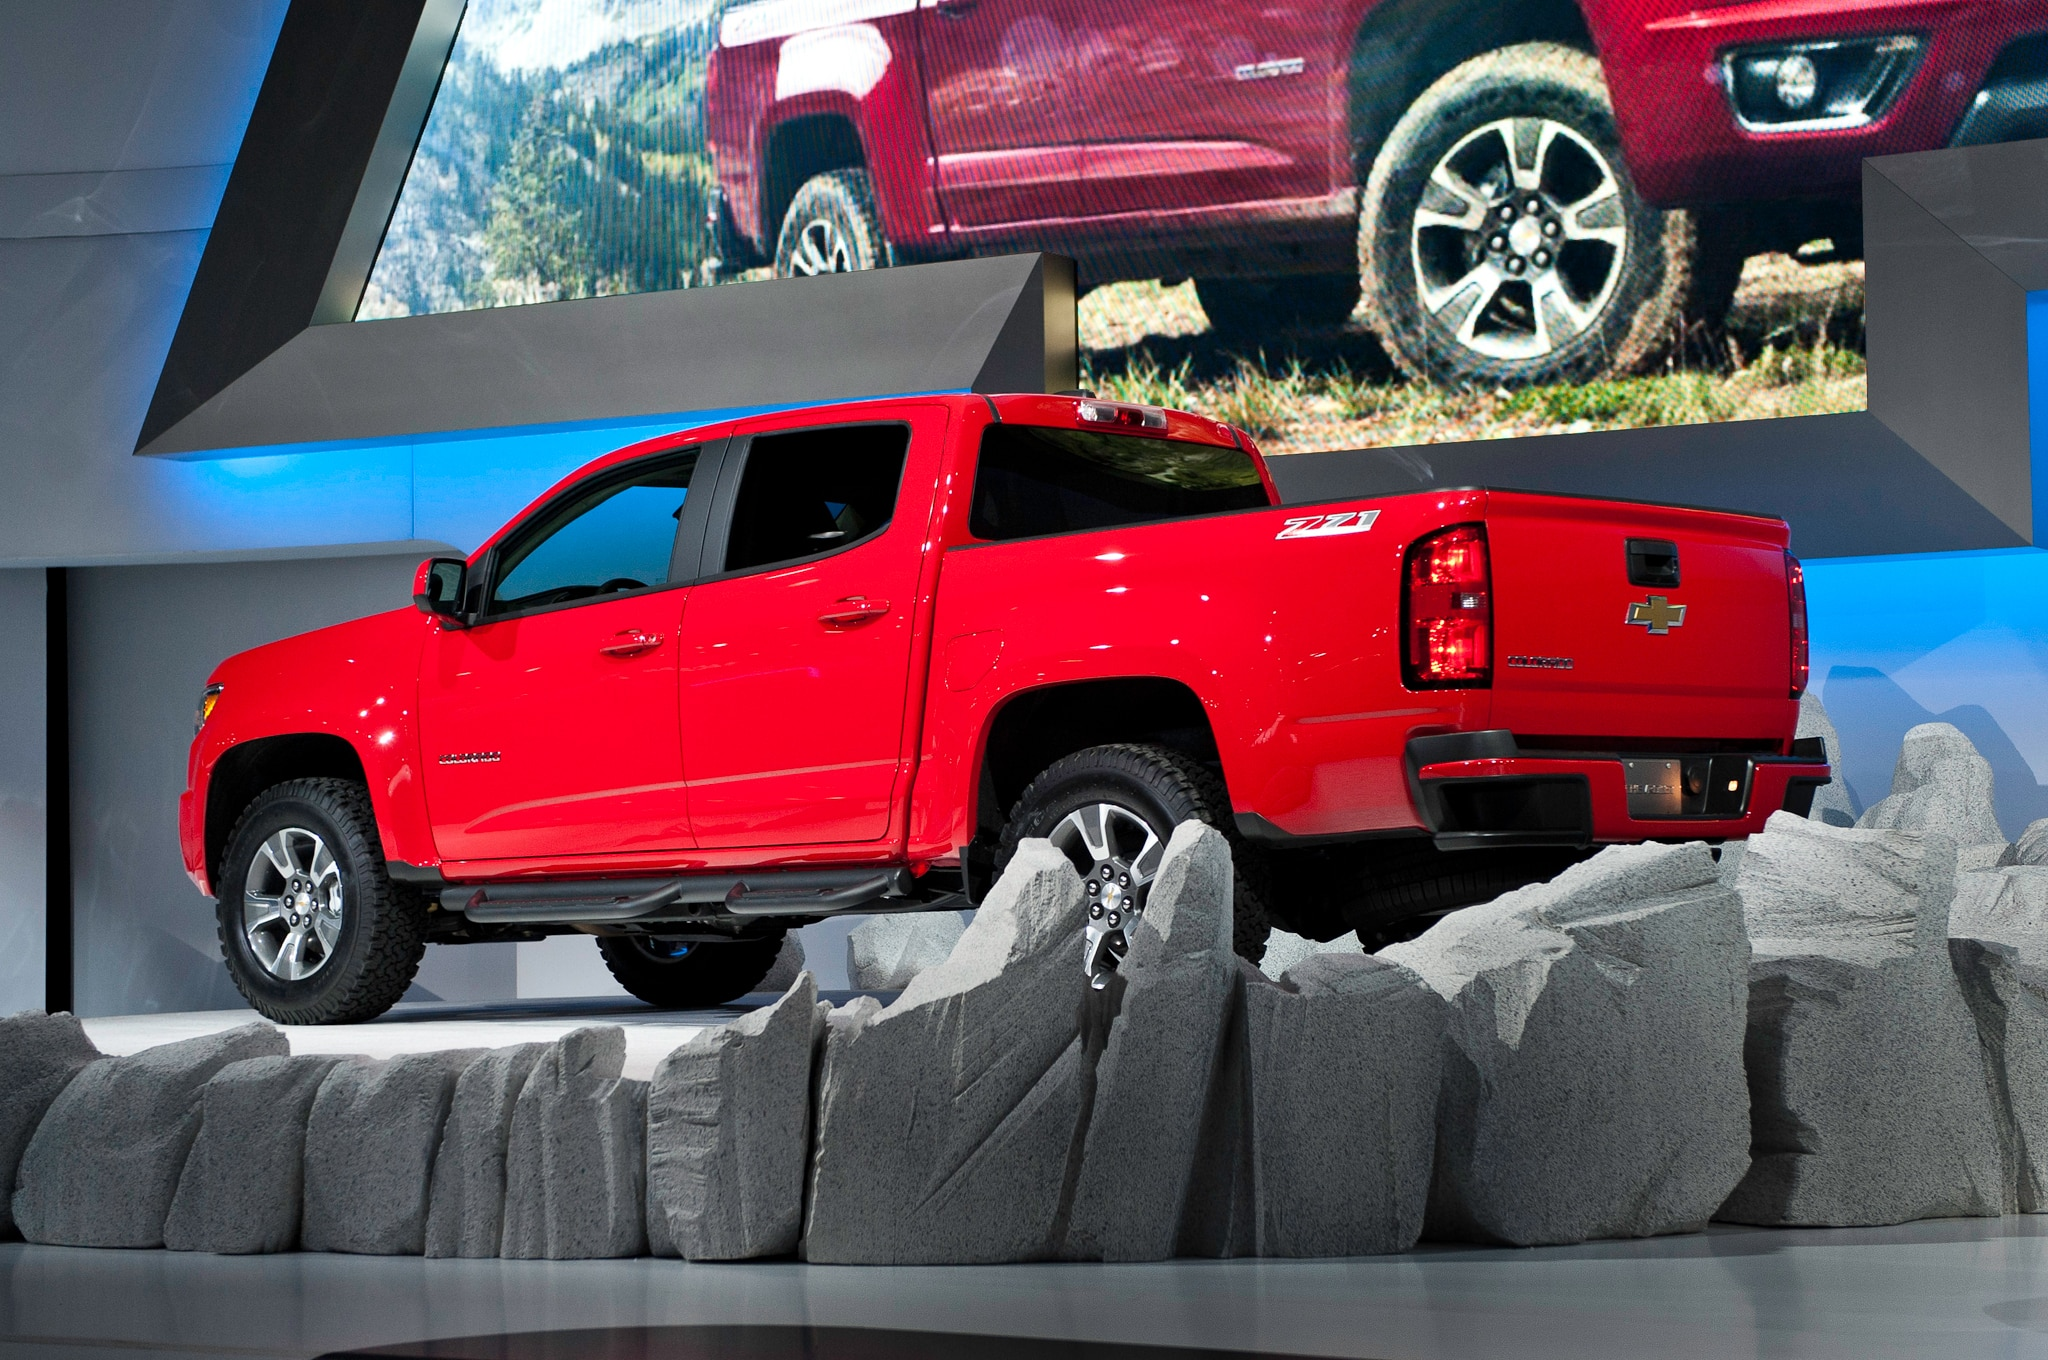 2015 Chevrolet Colorado rear 1